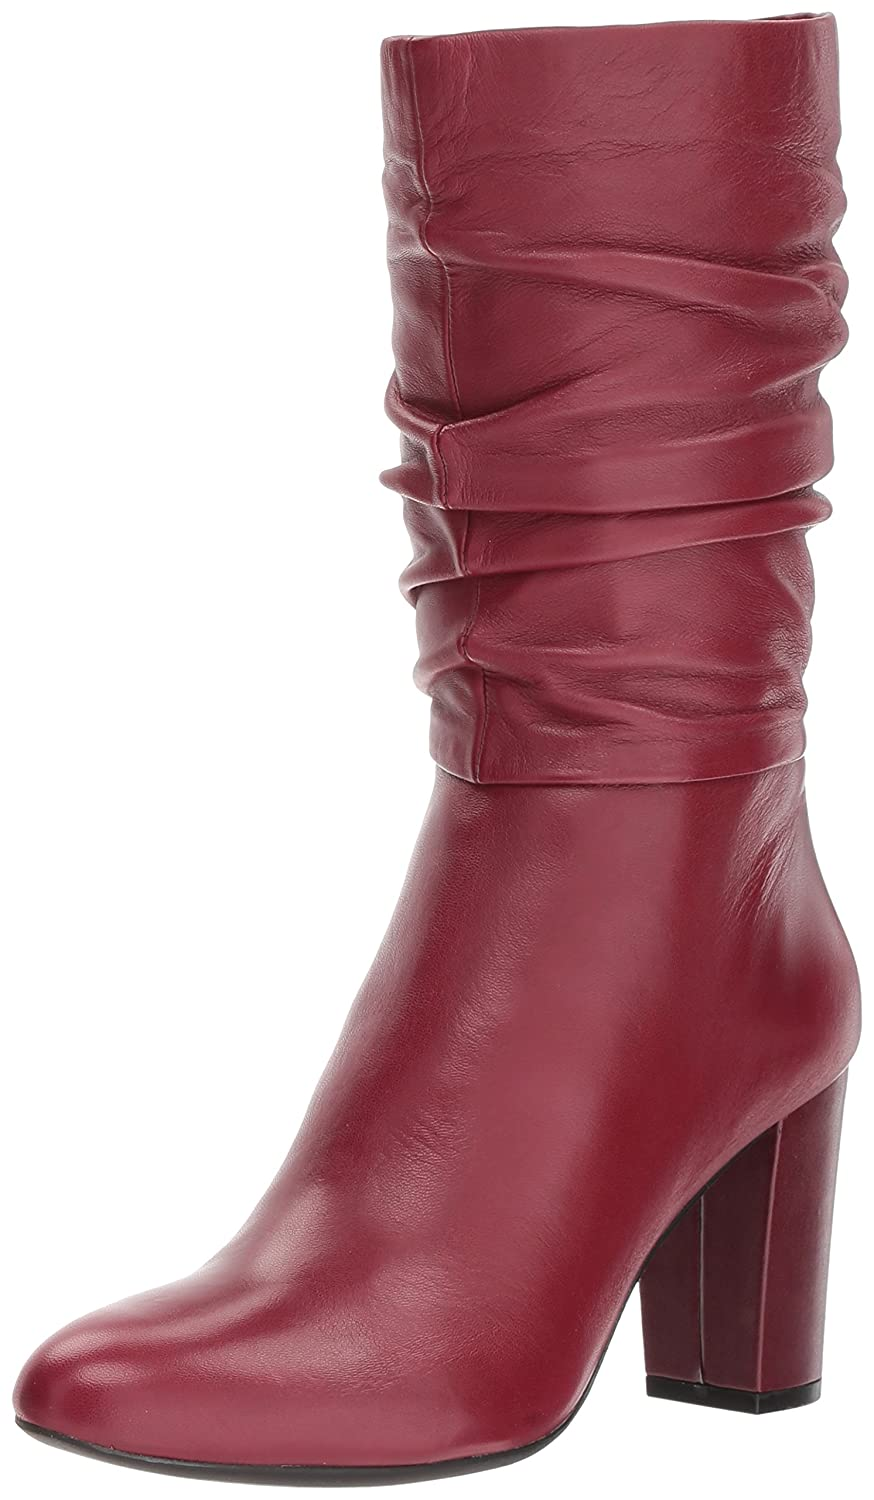 Anne Klein Women's Nysha Leather Fashion Boot B07693G7CZ 10 B(M) US|Wine Leather